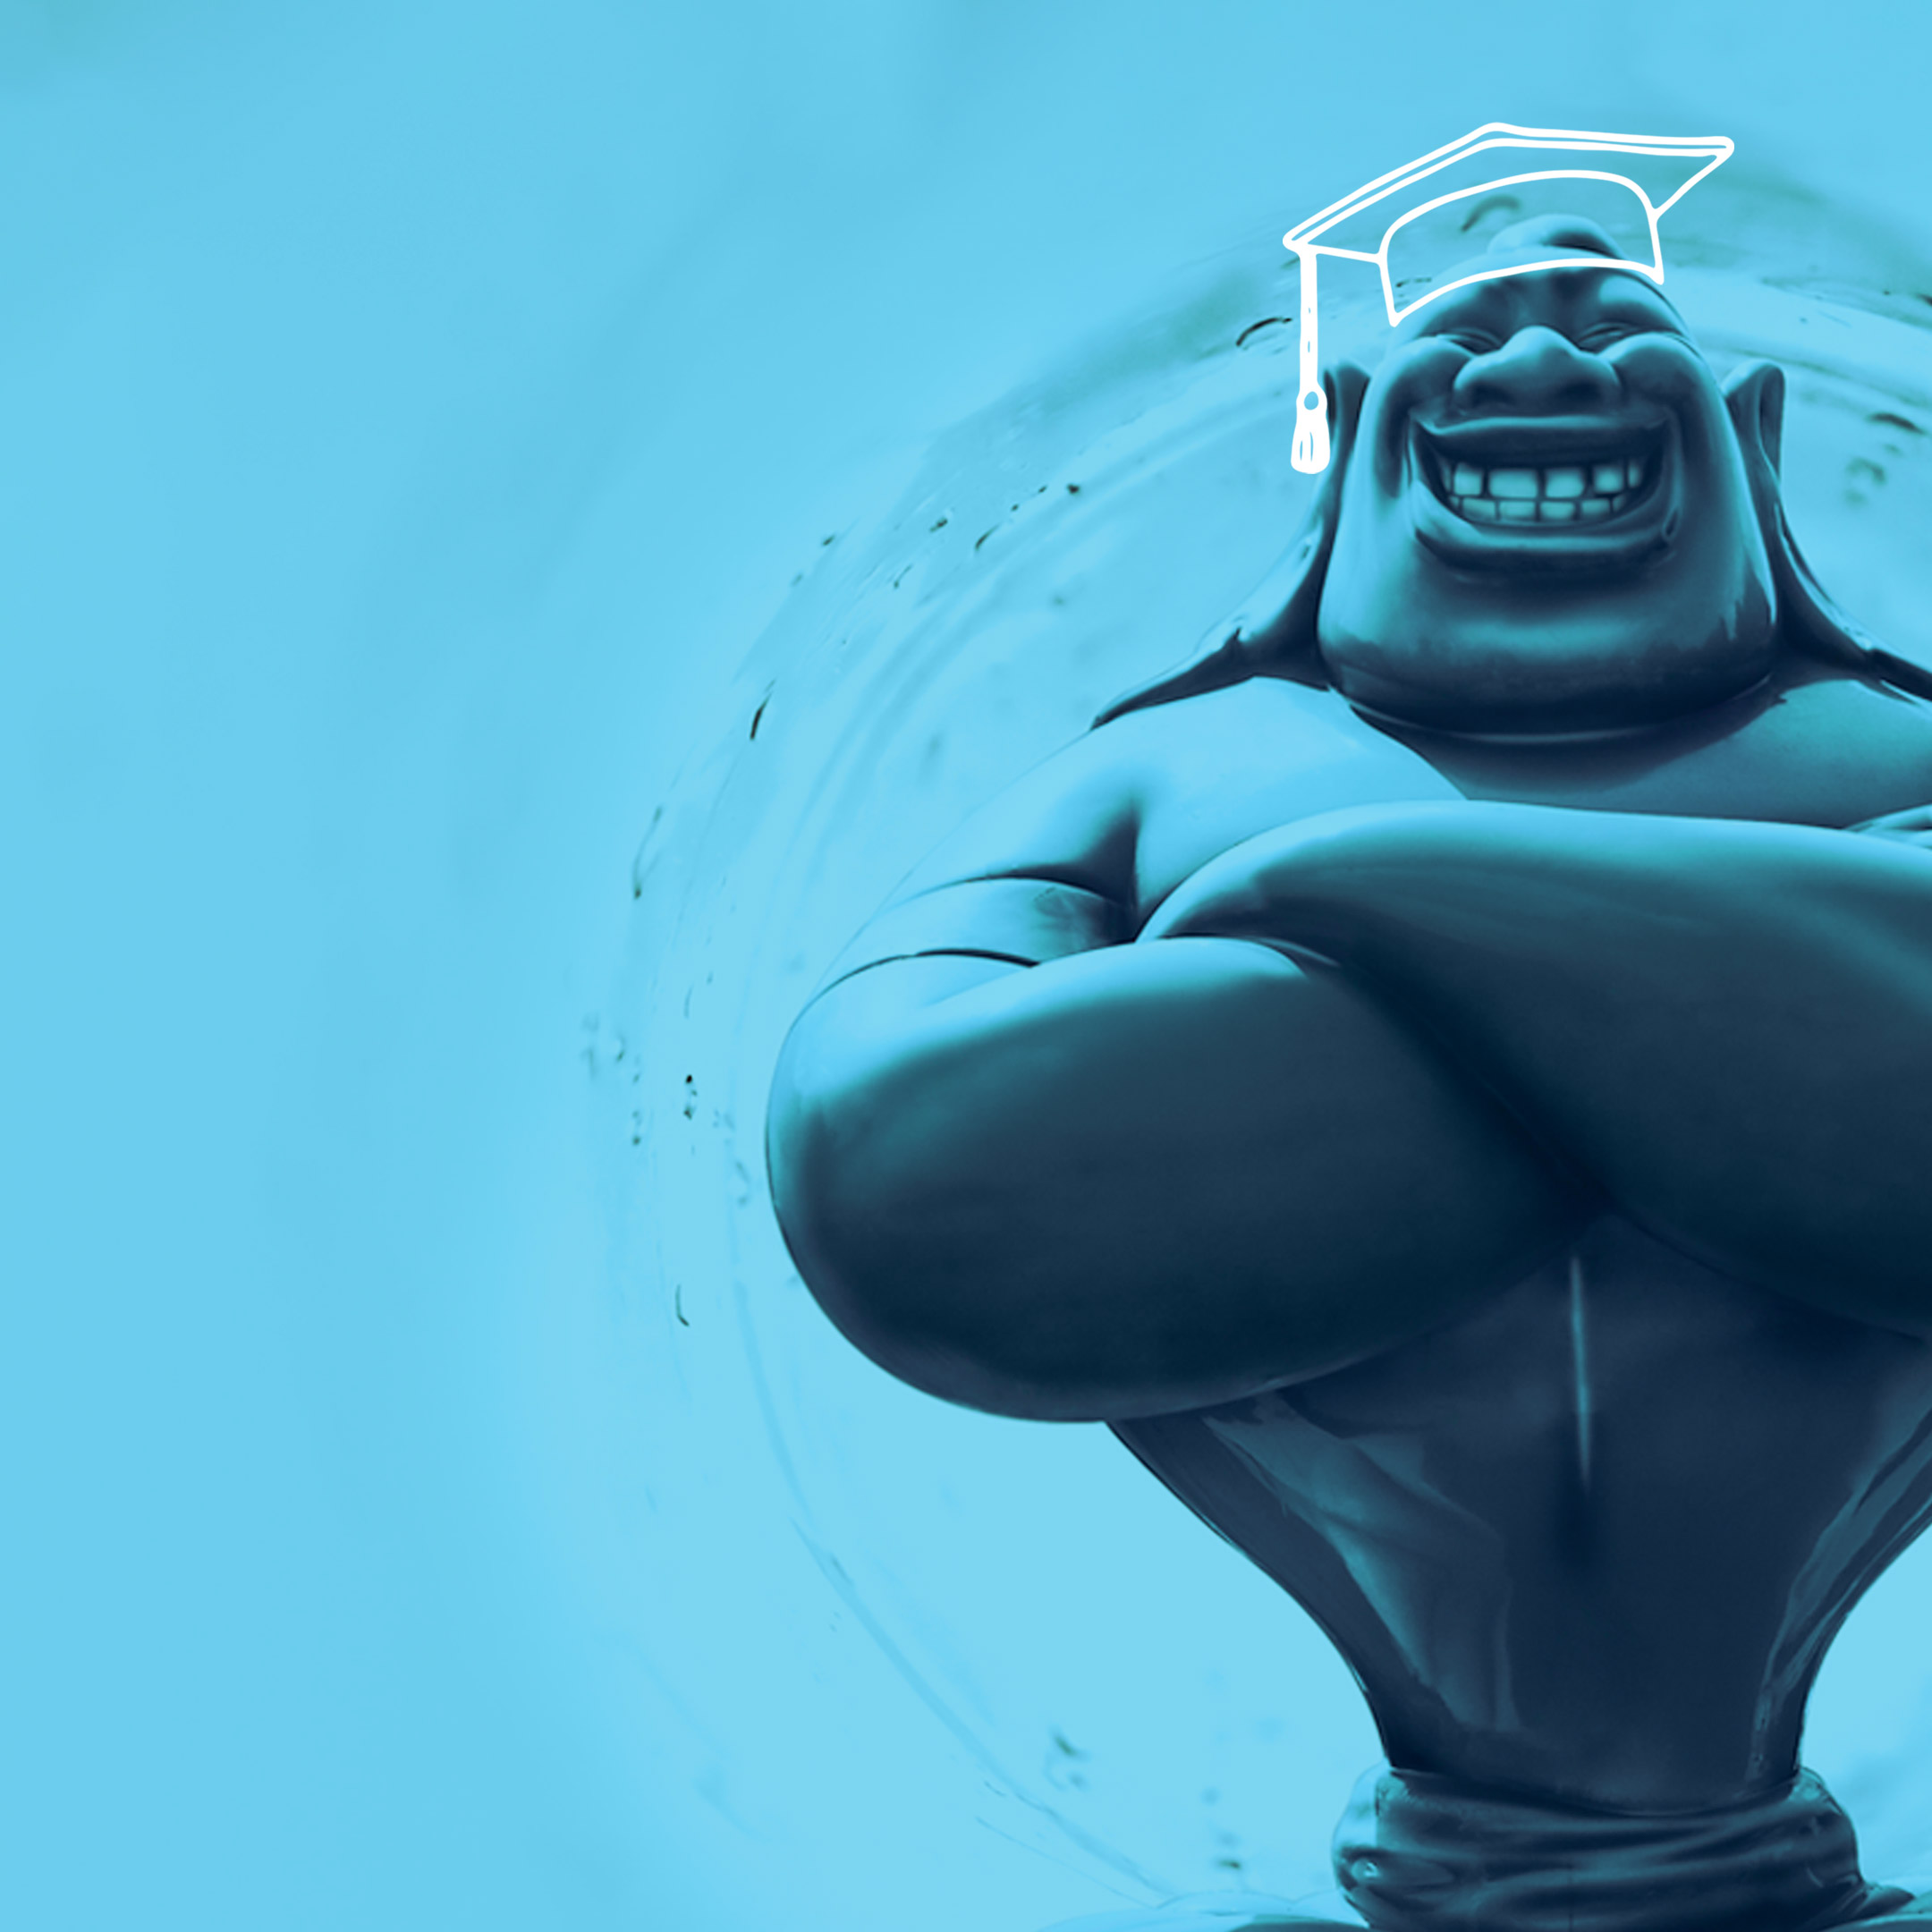 IT'S POSSIBLE TO GET A SCHOLARSHIP EVEN WITHOUT THE HELP OF A GENIE